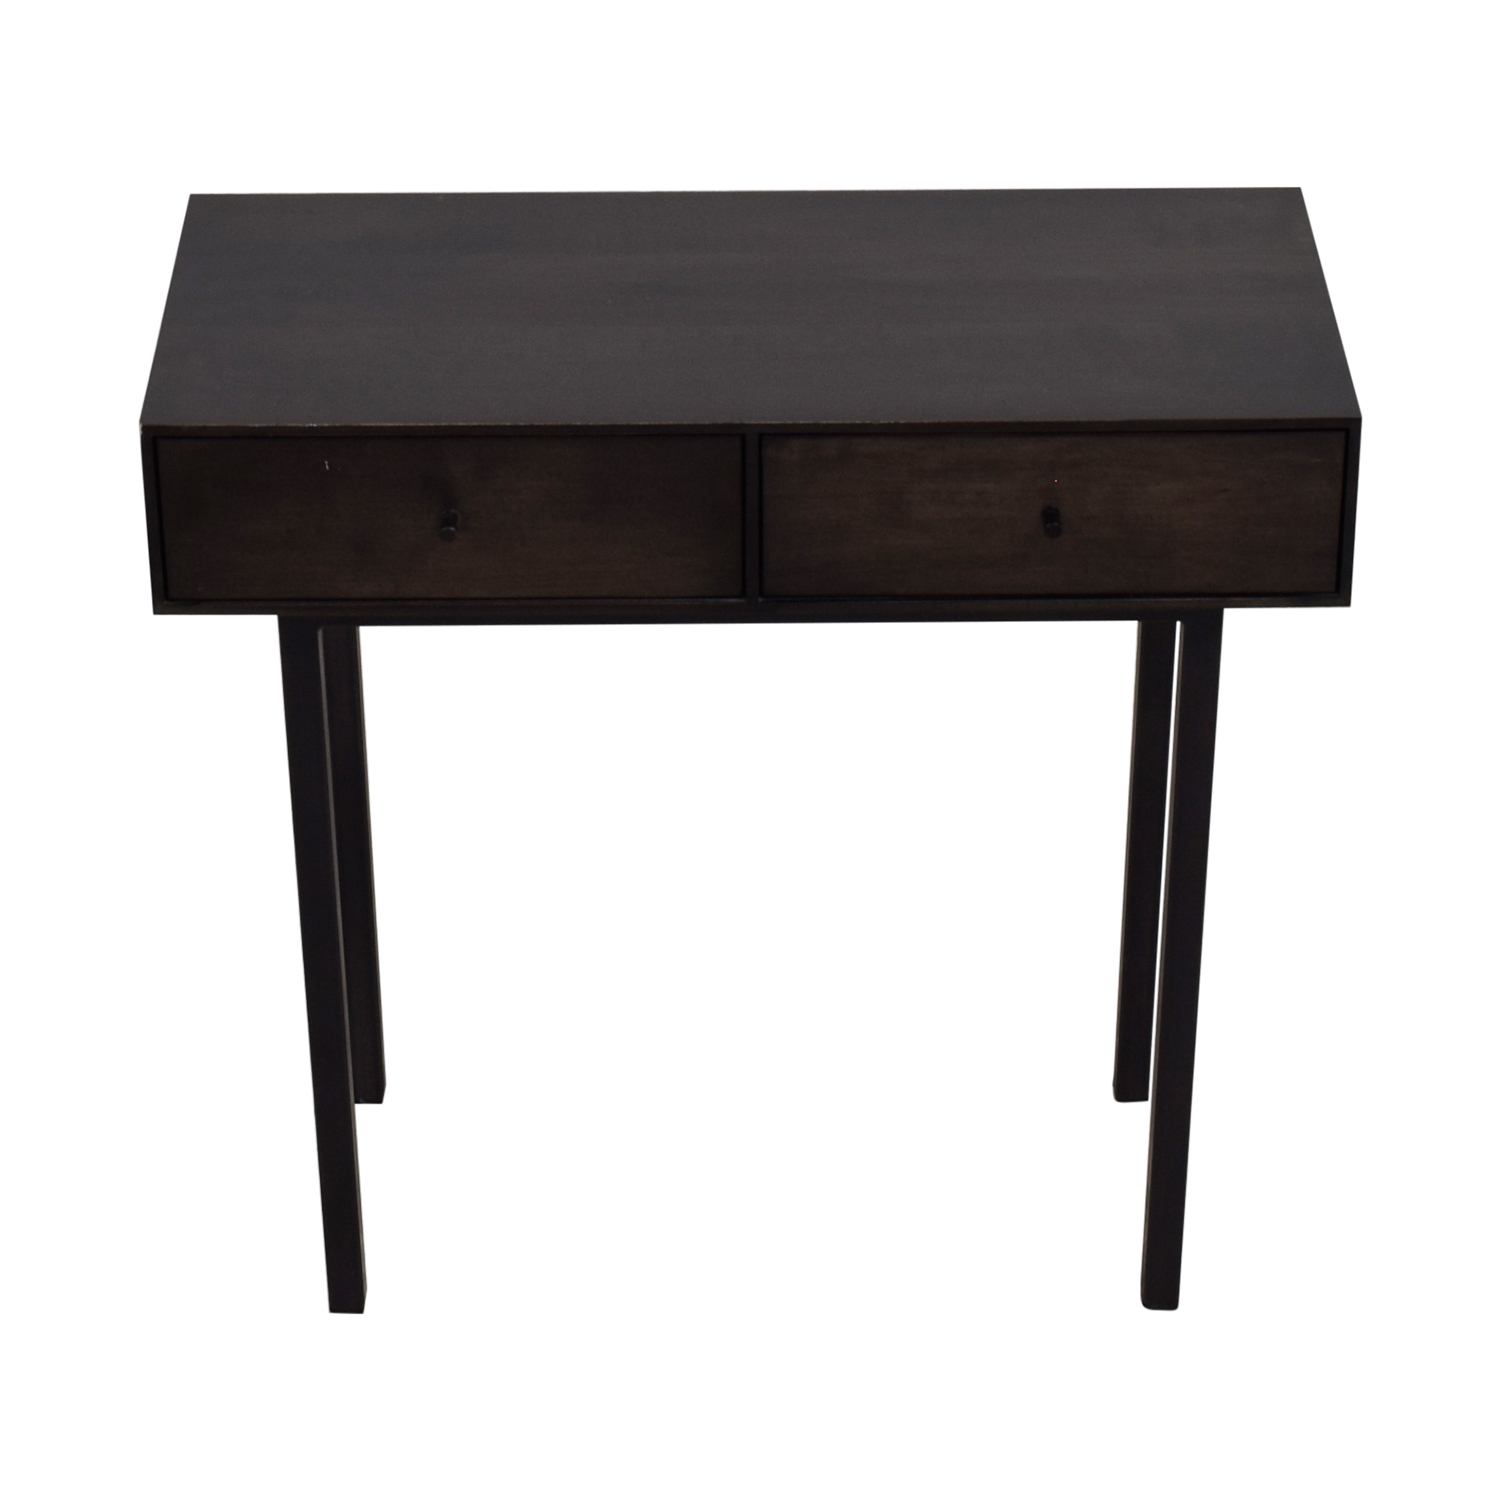 Room & Board Room & Board Wood Two-Drawer Side Table price